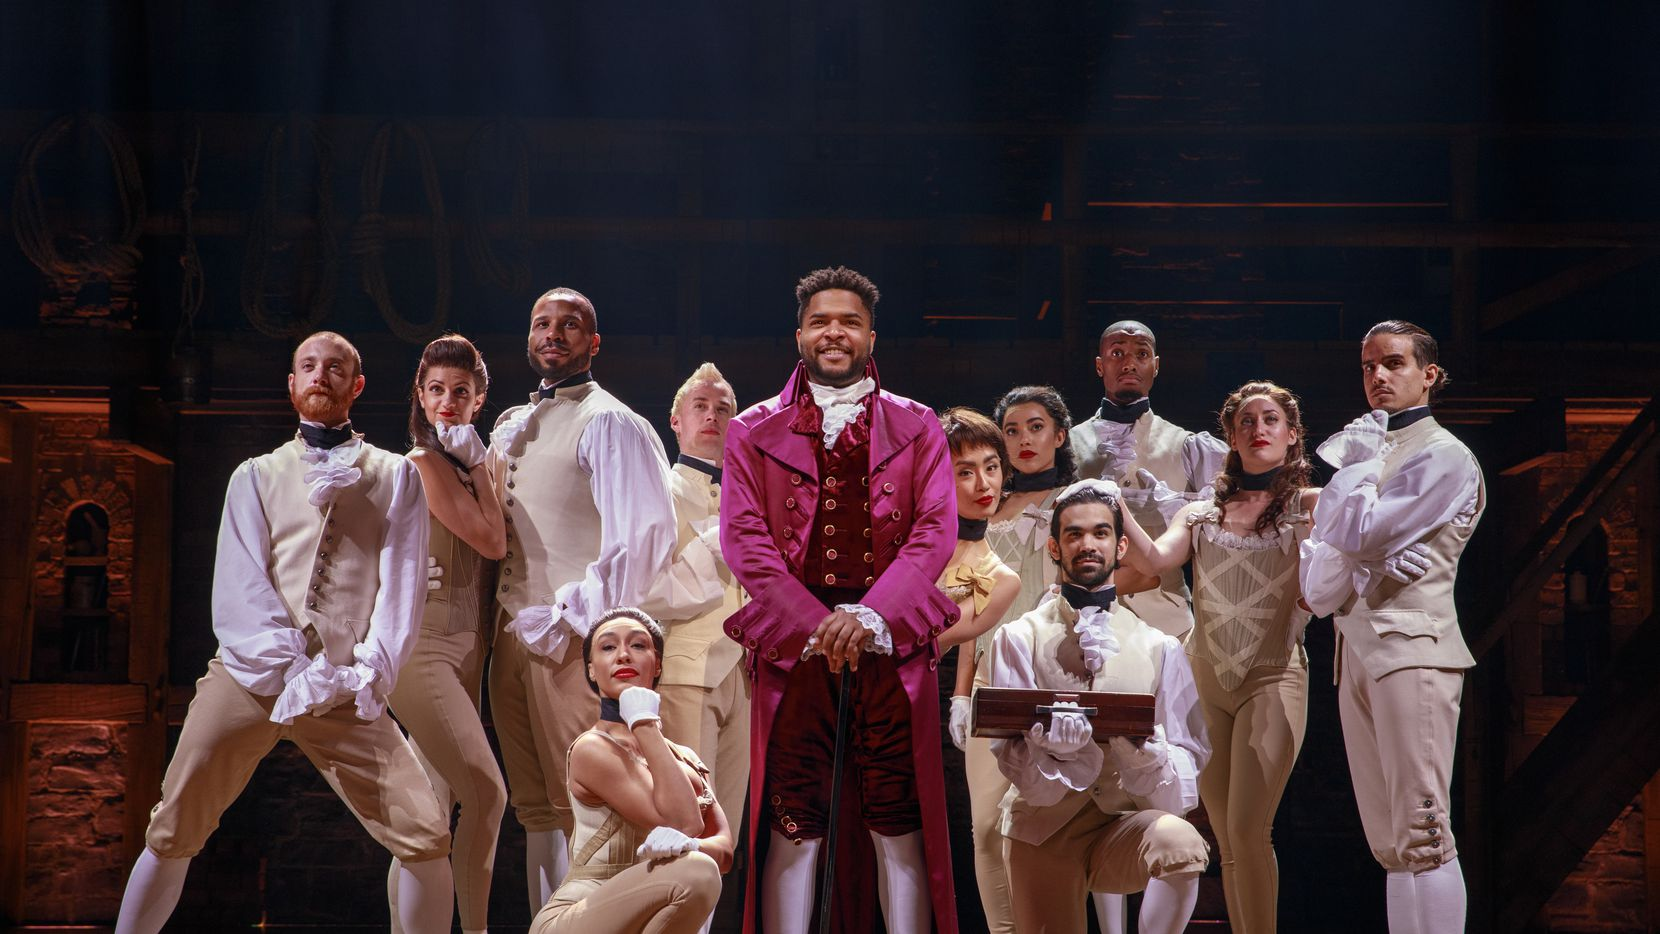 """Bryson Bruce, who portrays Thomas Jefferson in the national touring production of """"Hamilton"""" coming to Bass Performance Hall in Fort Worth next June, with other members of the cast."""